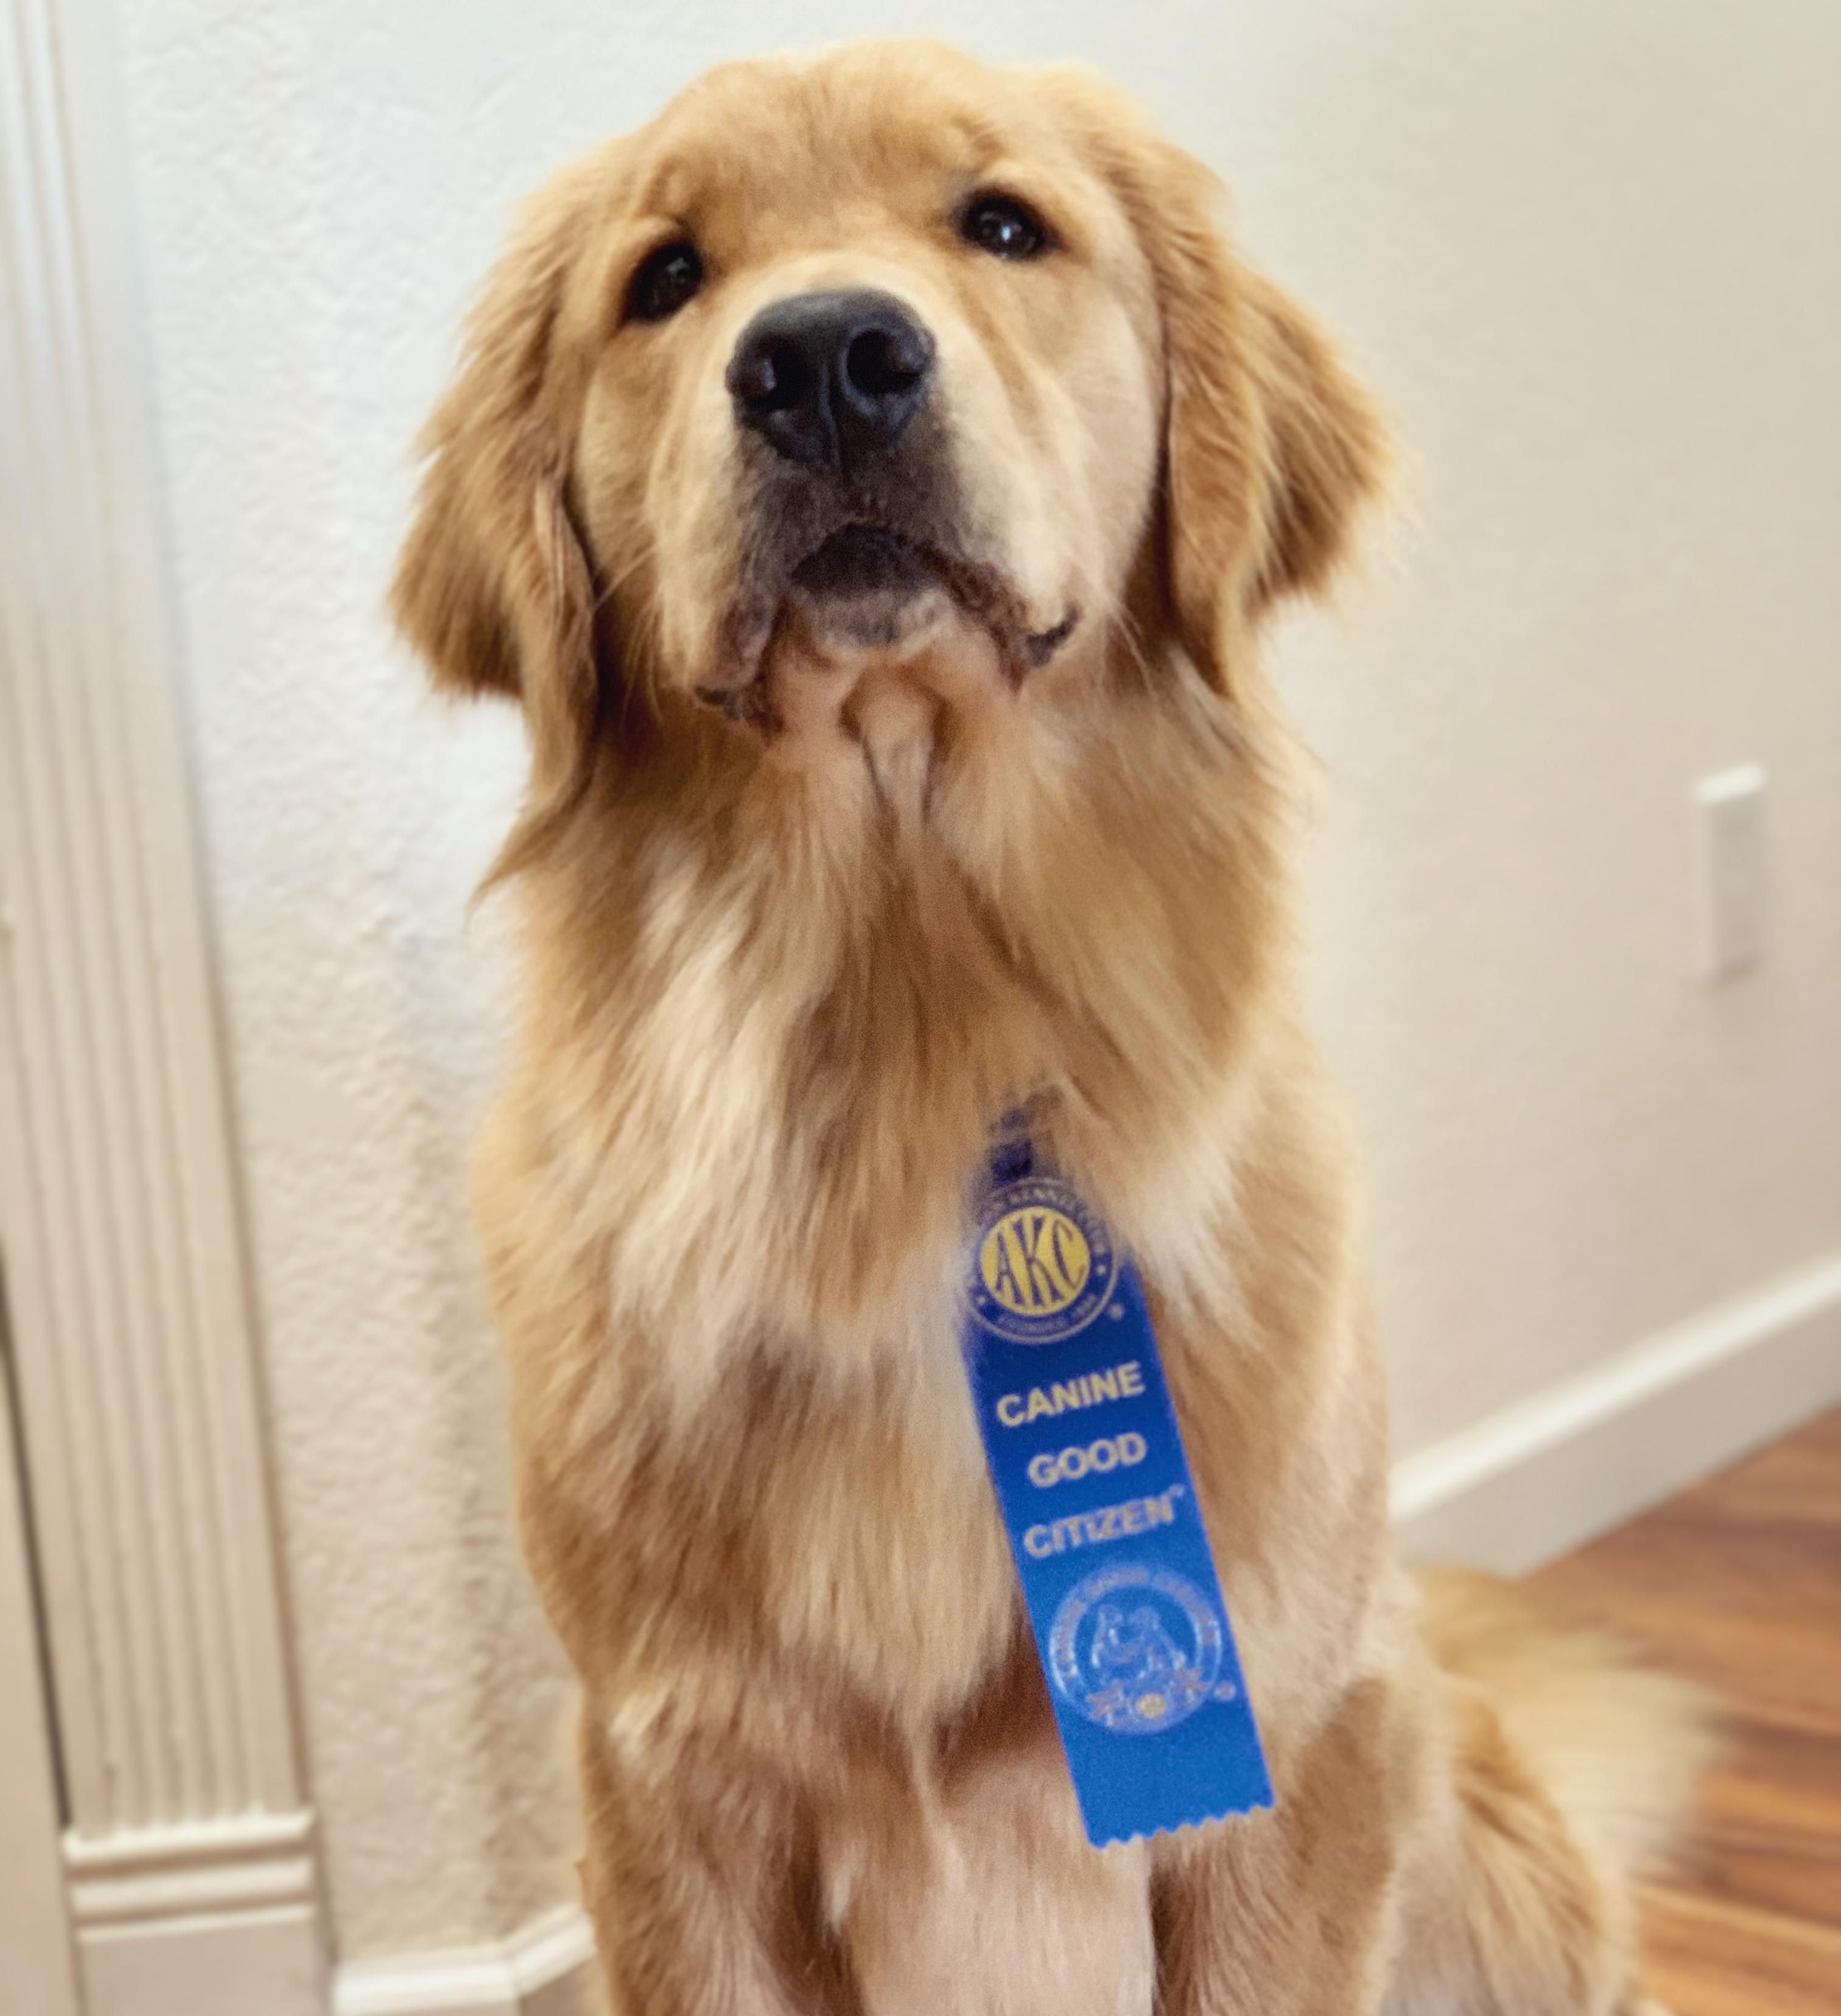 She Passed Her Cgc Test Today Goldenretriever Golden Retriever Golden Retriever Girl Big Dogs